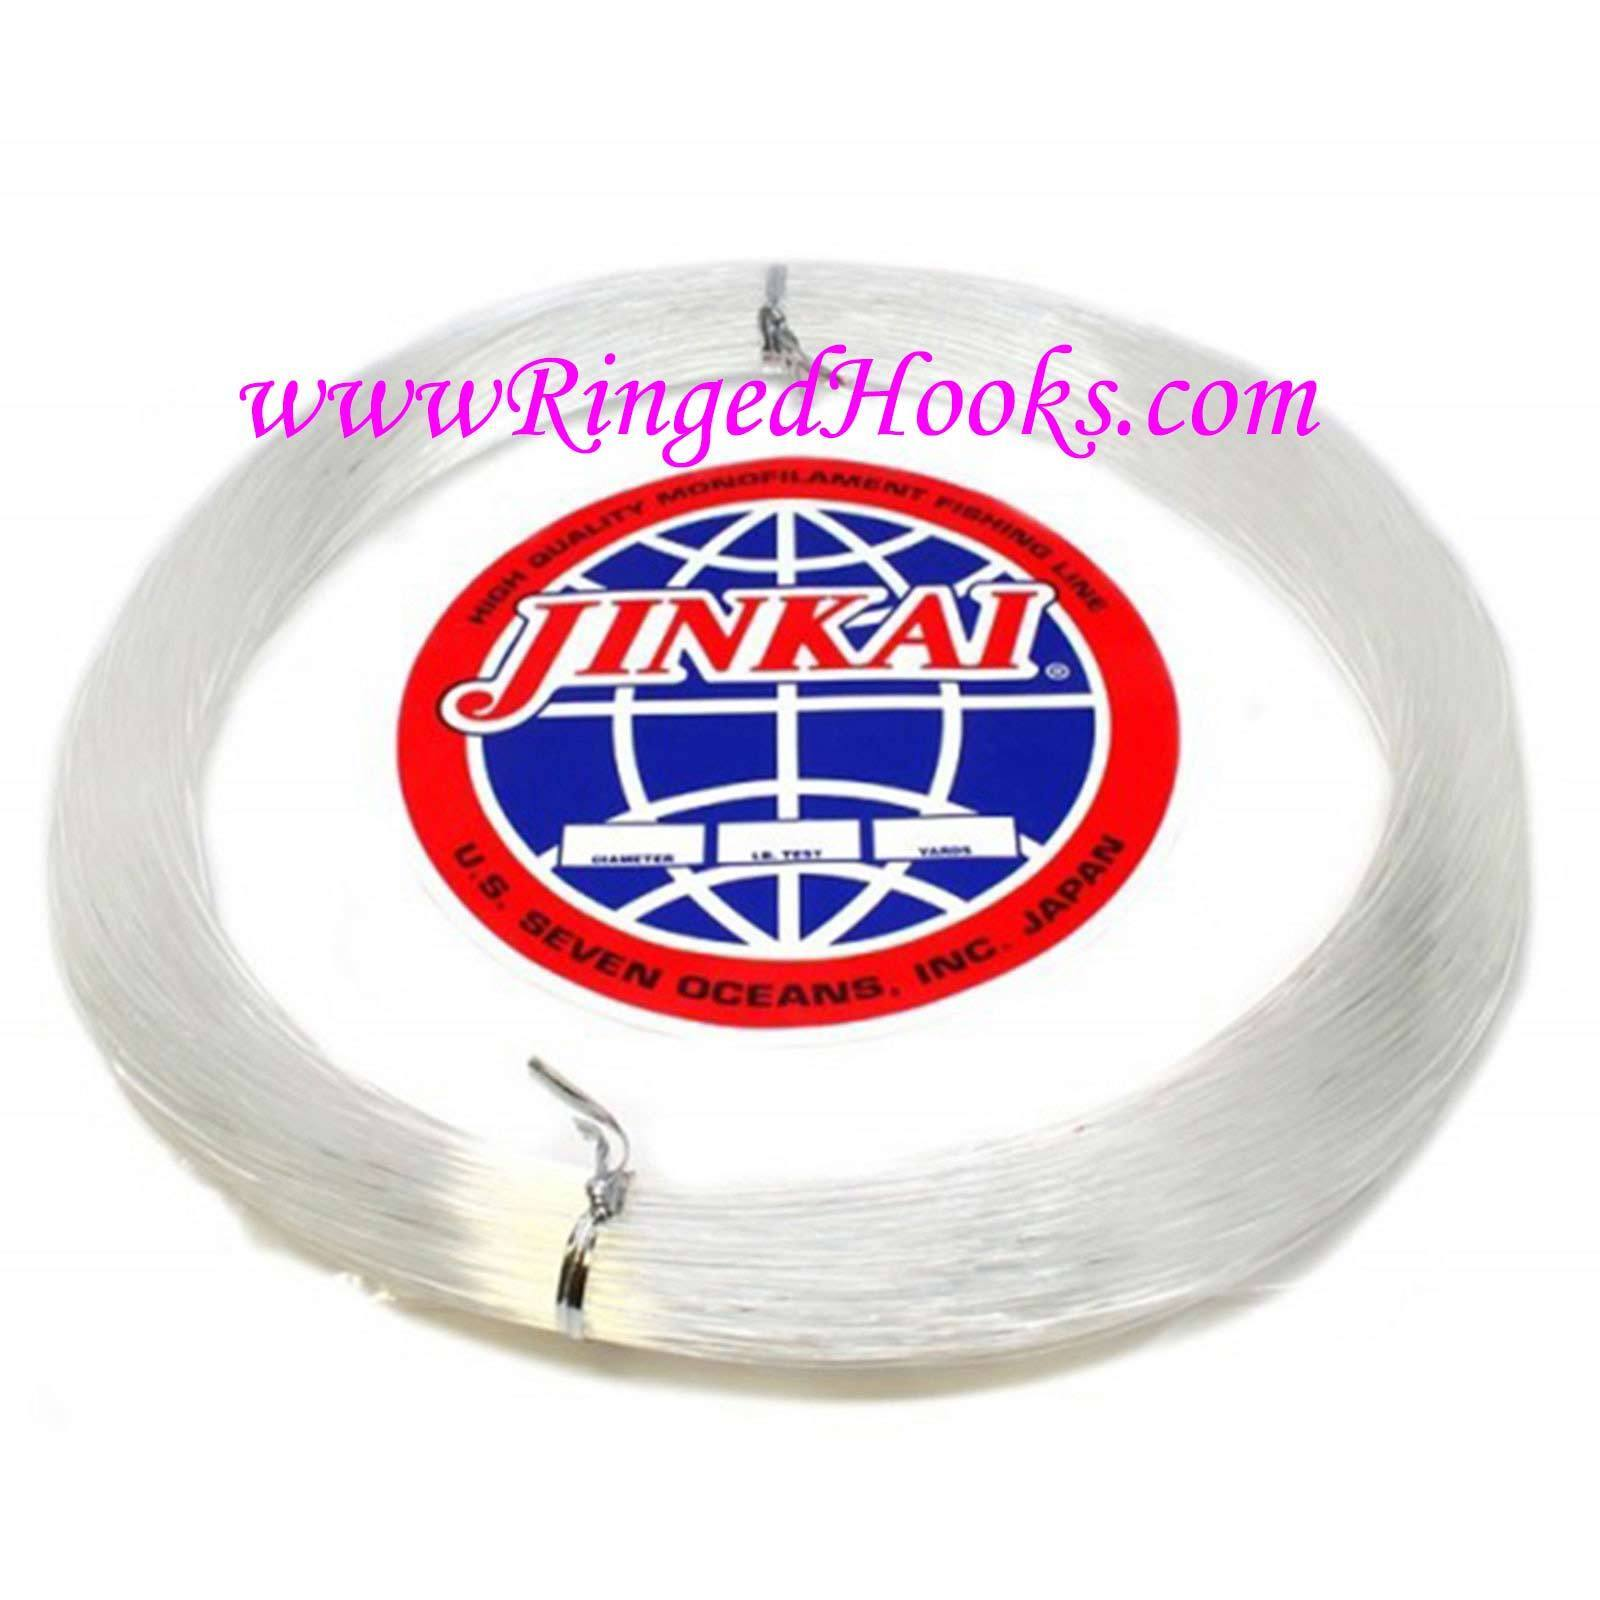 Jinkai Monofiliment leader - CLEAR - 100 yd. Coil - 300 lb. Test - 1.56 mm Dia.